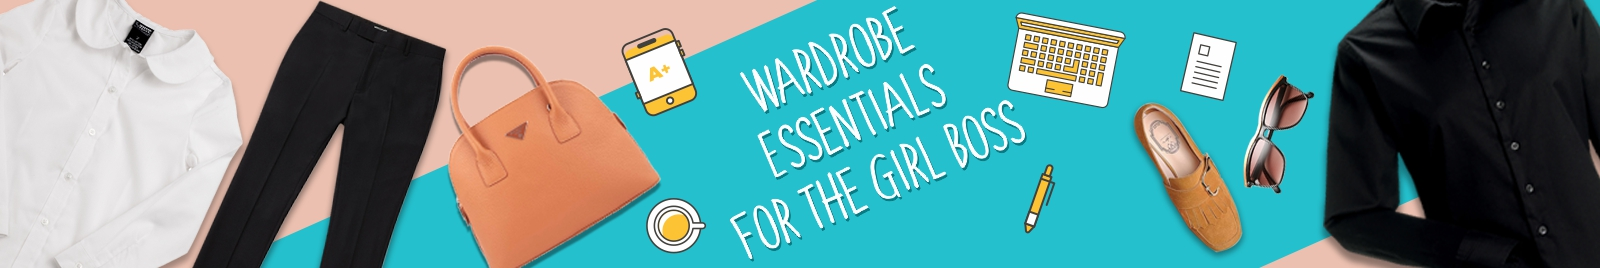 Wardrobe Essentials For The Girl Boss